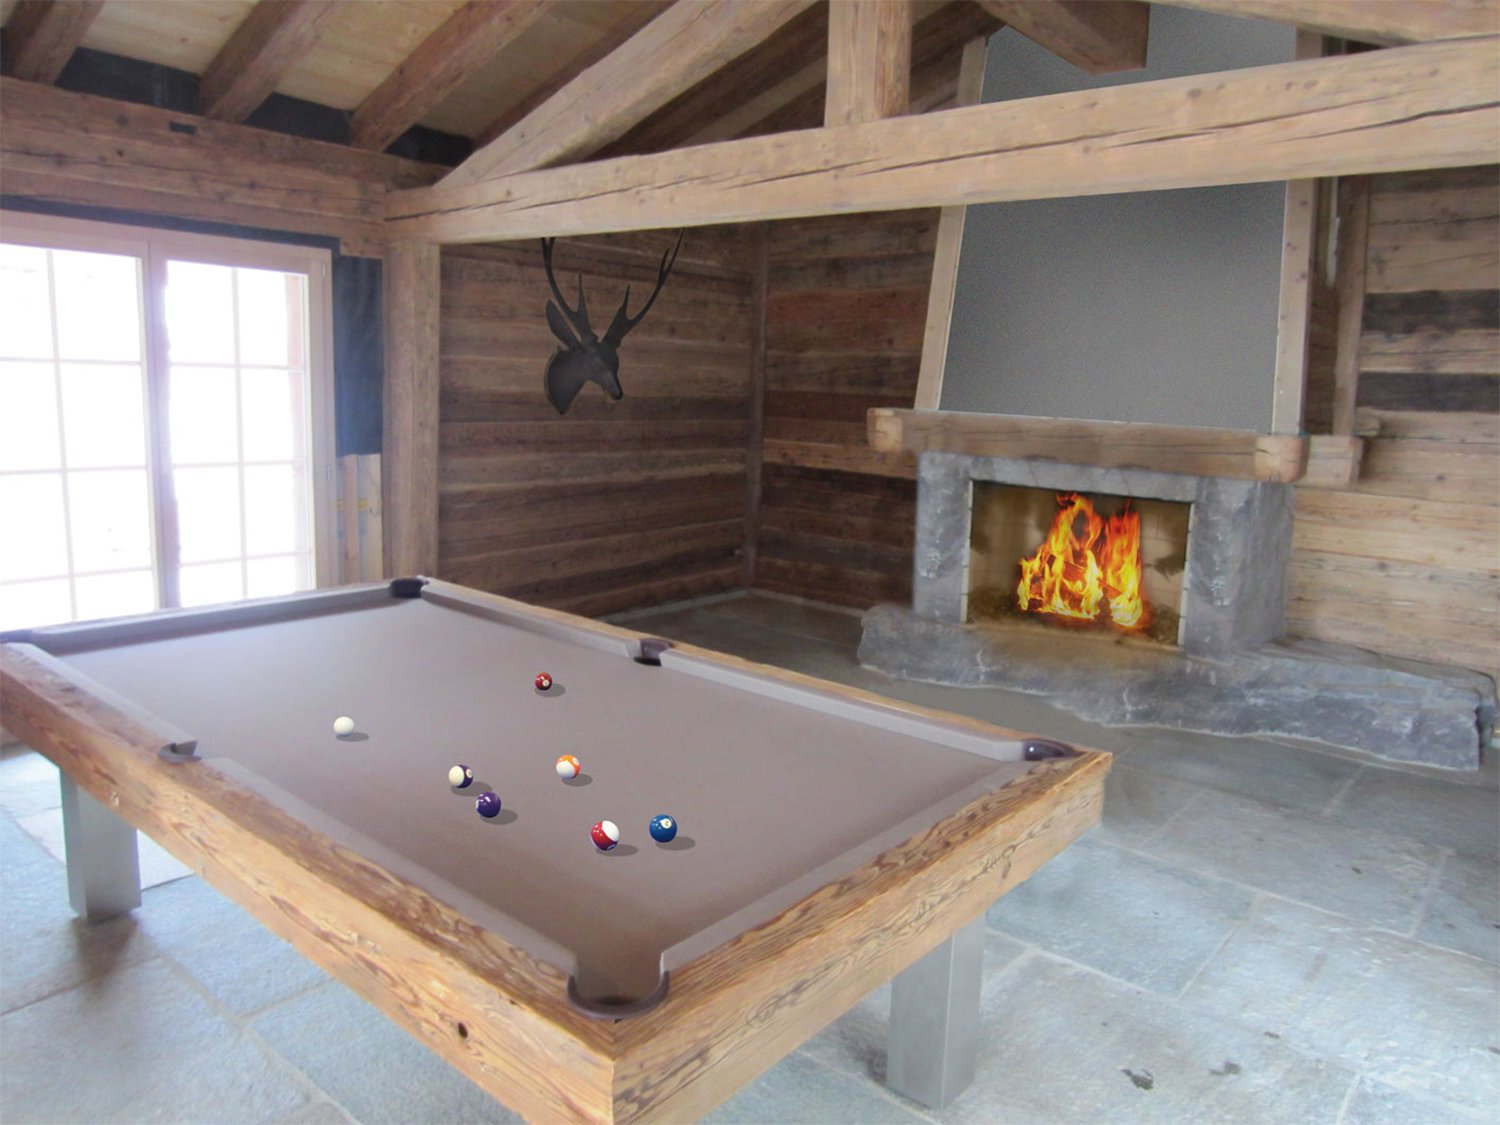 billard toulet megeve pool table 6 ft 7 ft 8 ft. Black Bedroom Furniture Sets. Home Design Ideas